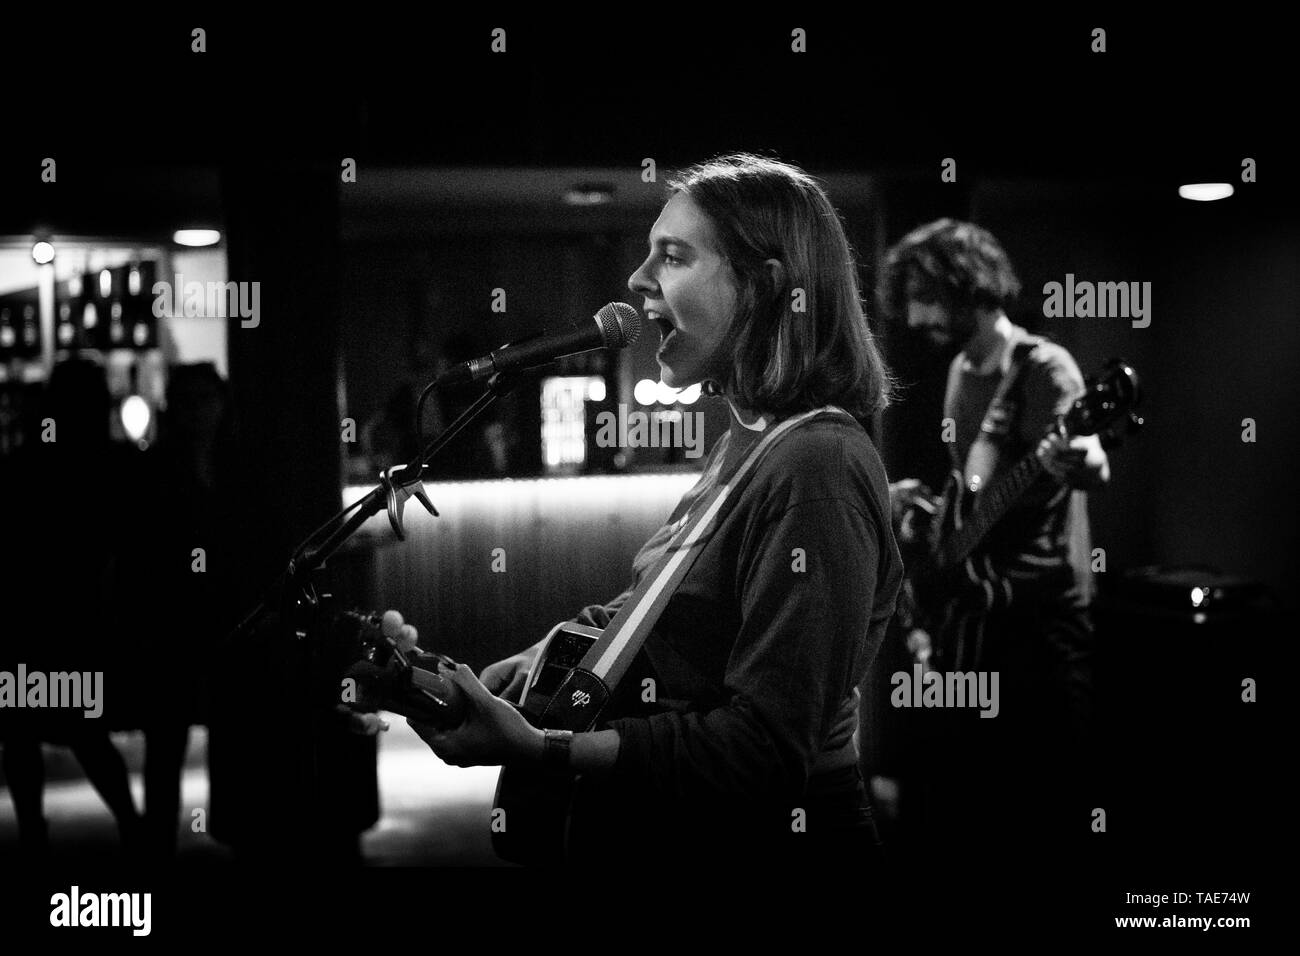 Denmark, Copenhagen - May 18, 2019. The Italian singer, songwriter and musician Any Other performs a live concert at VEGA in Copenhagen. (Photo credit: Gonzales Photo - Christian Hjorth). - Stock Image